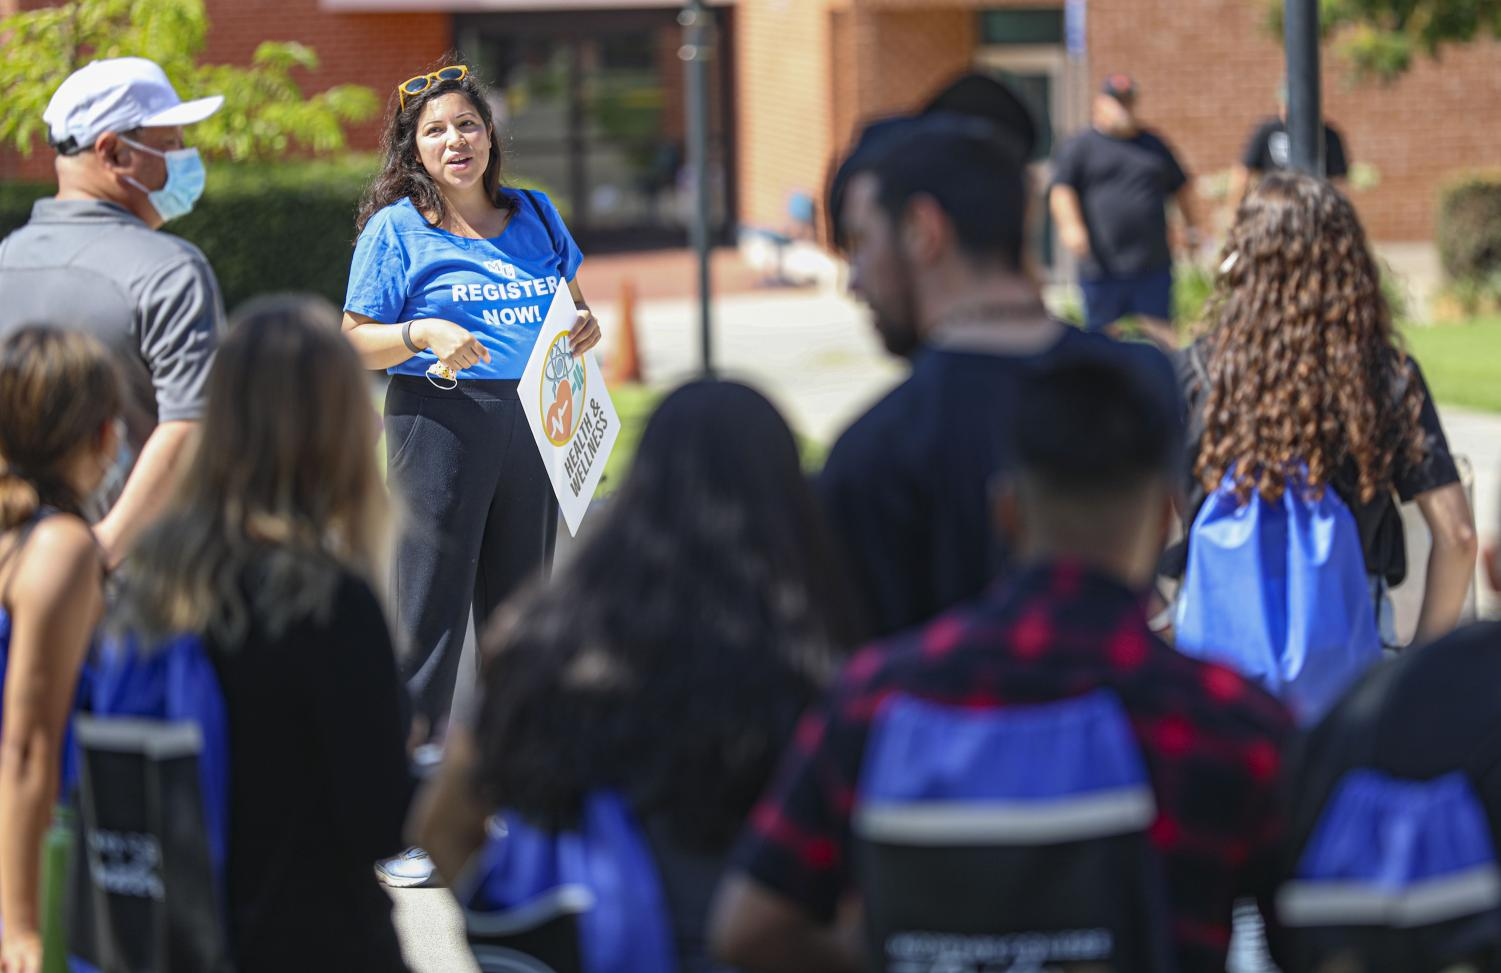 Moorpark+College+welcomed+first-year+students+on+campus+Monday+for+one+of+its+first+in-person+events+since+the+beginning+of+the+COVID-19+pandemic+for+New+Student+Welcome+Day.